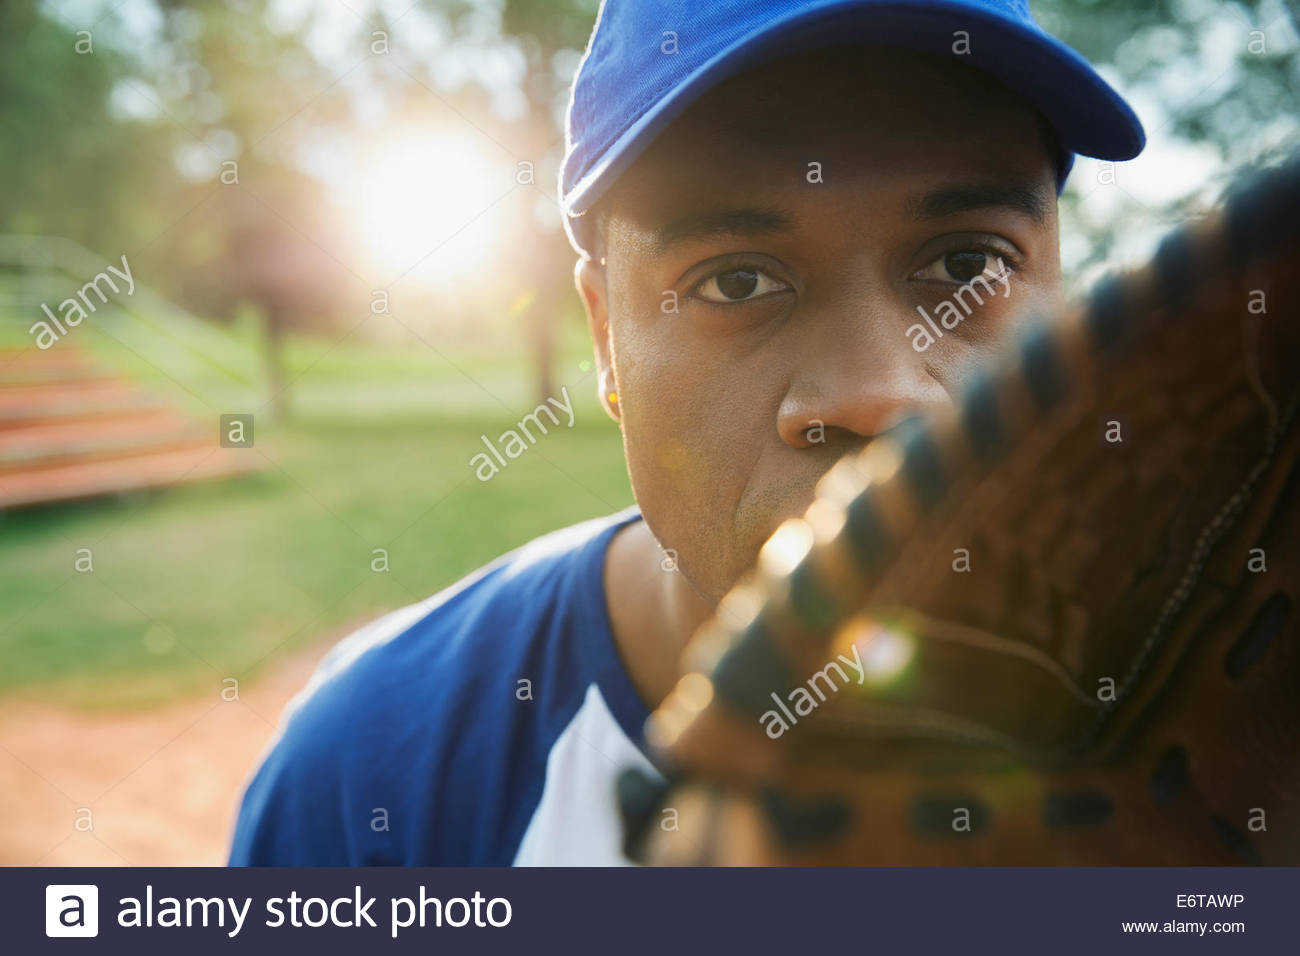 Portrait of serious baseball player holding glove - Stock Image